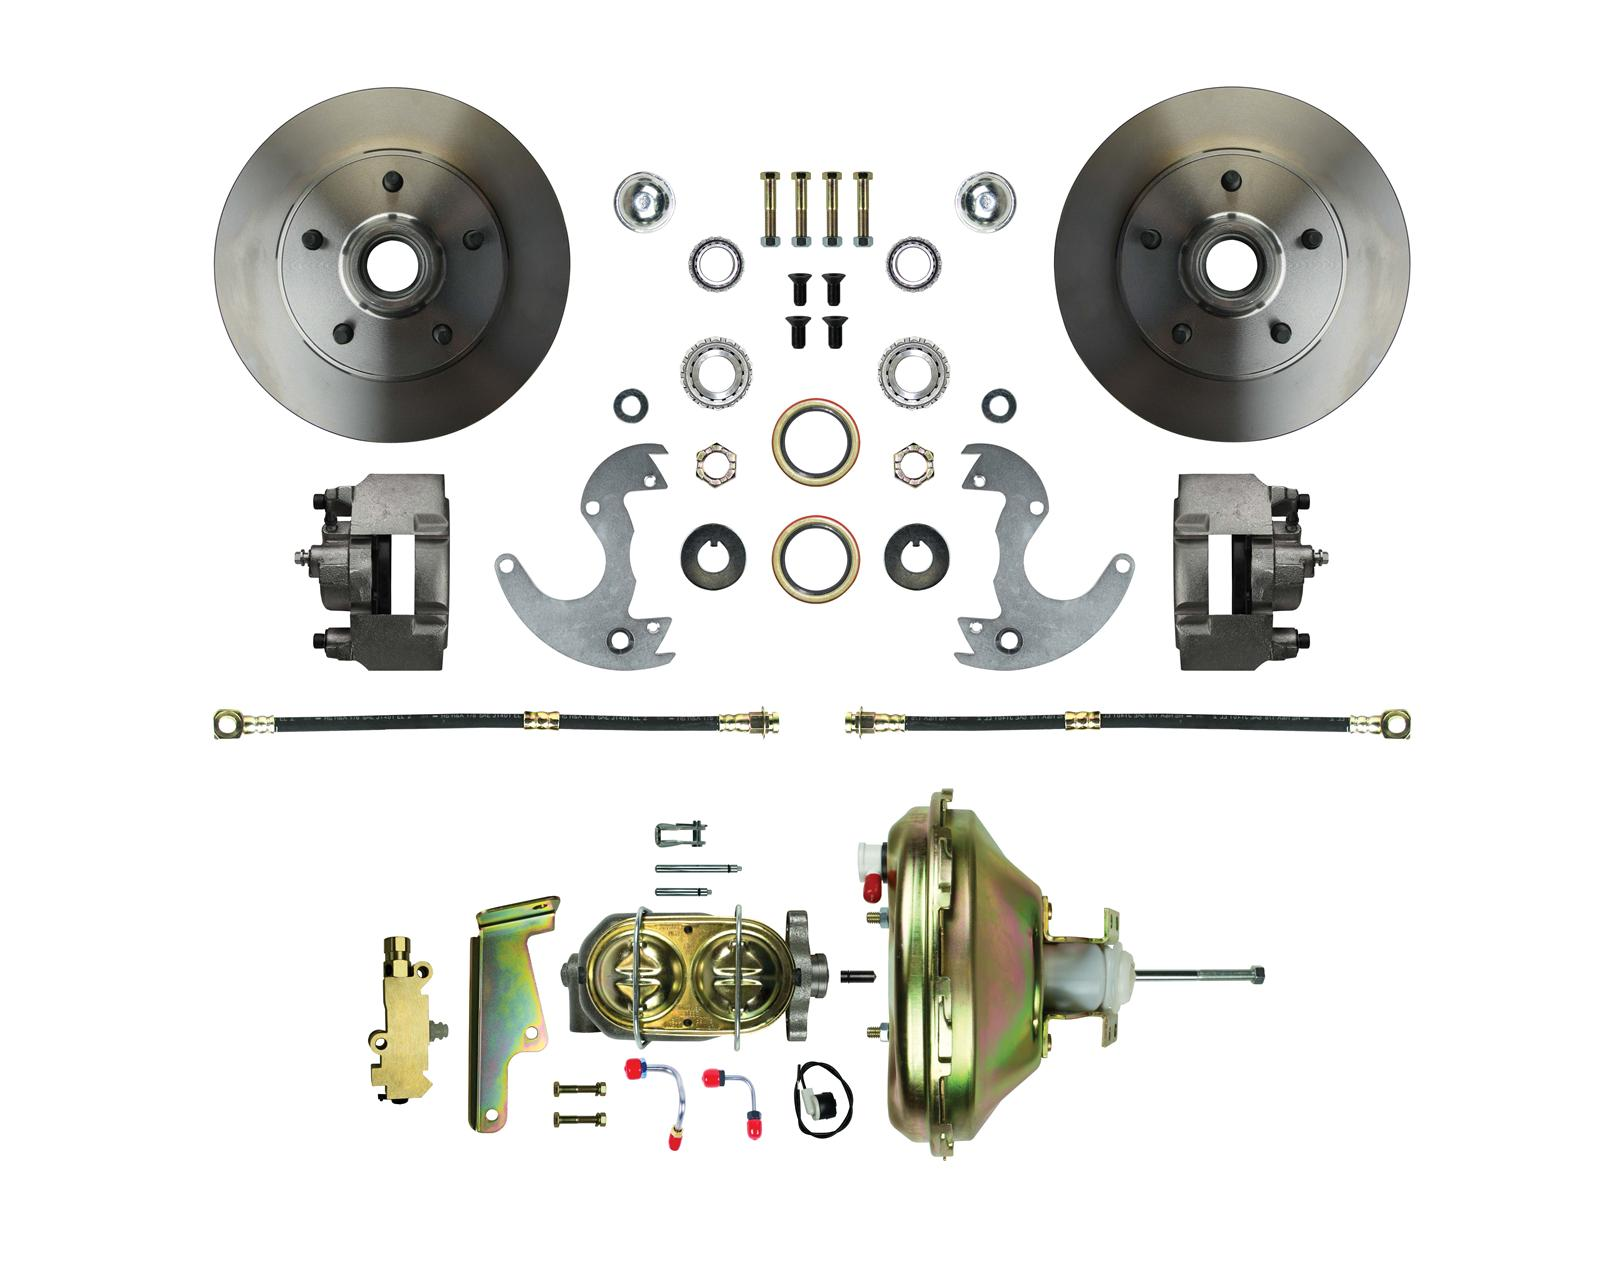 Right Stuff Detailing Disc Brake Conversion Kits for 14 in. Wheels AFXDC14  - Free Shipping on Orders Over $99 at Summit Racing